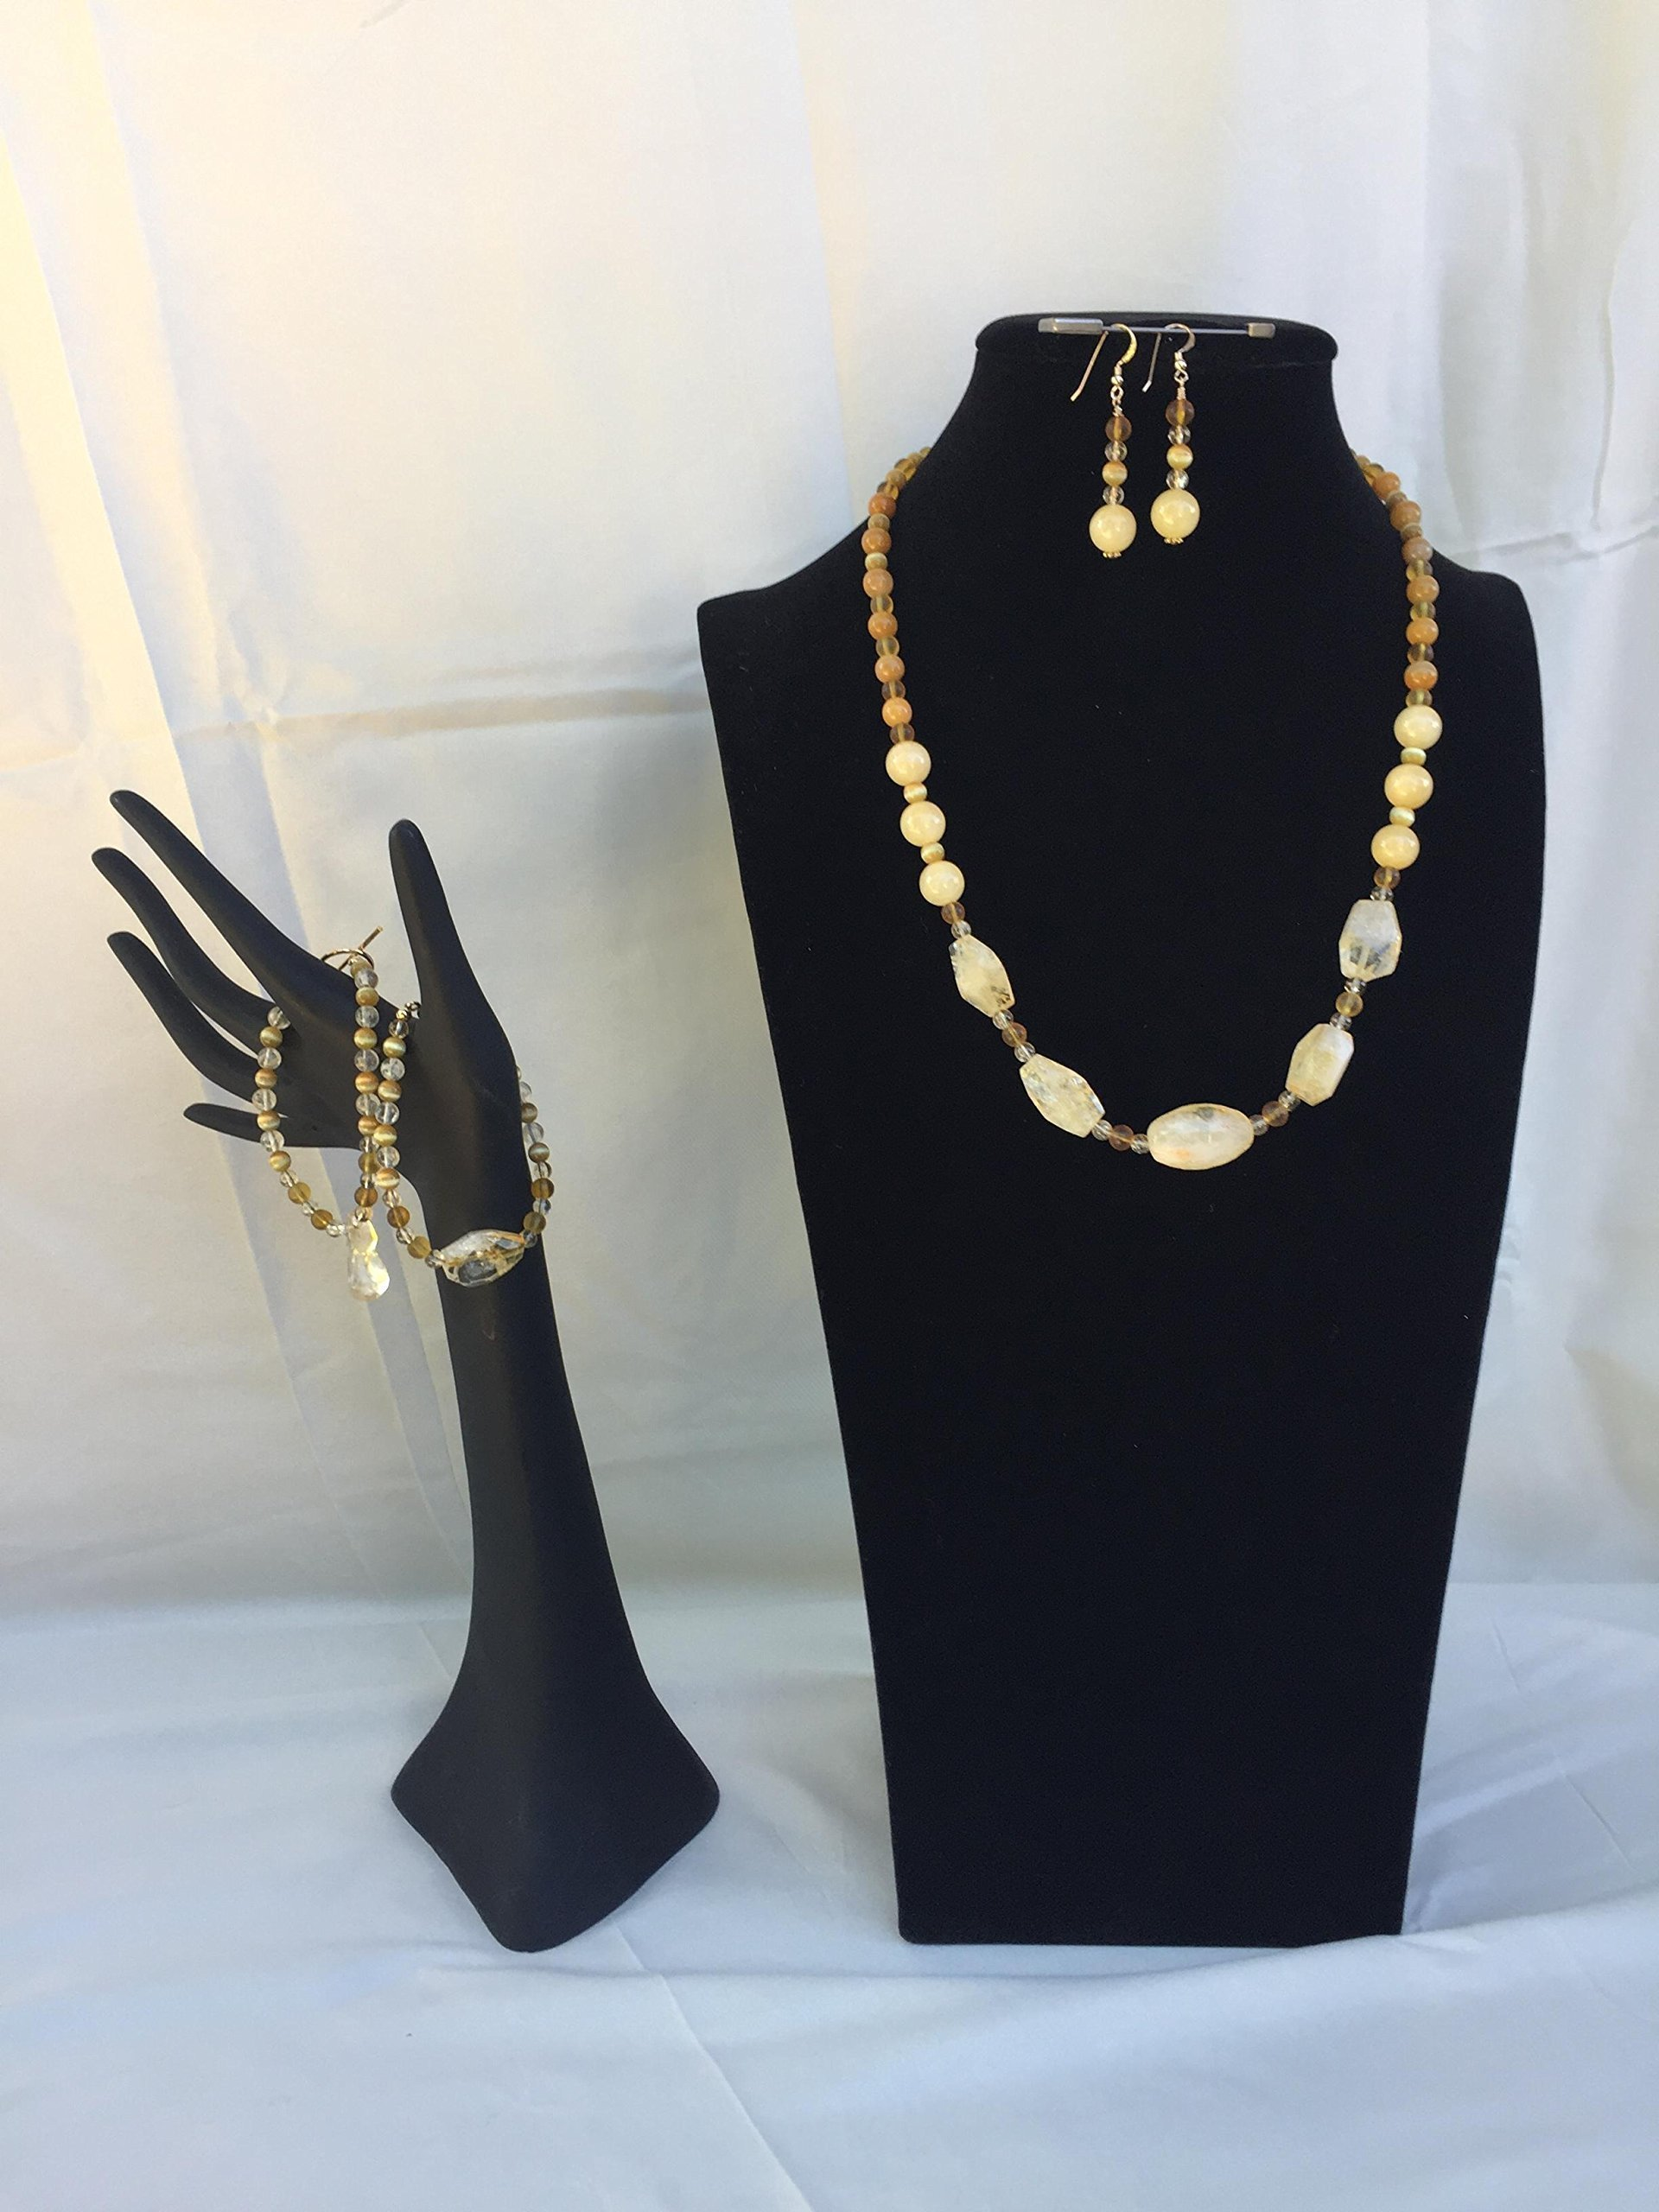 Impressive handmade jewelry set with a necklace, two bracelets and matching dangle earrings. Citrine, Opal and mixed gemstones. One of a kind